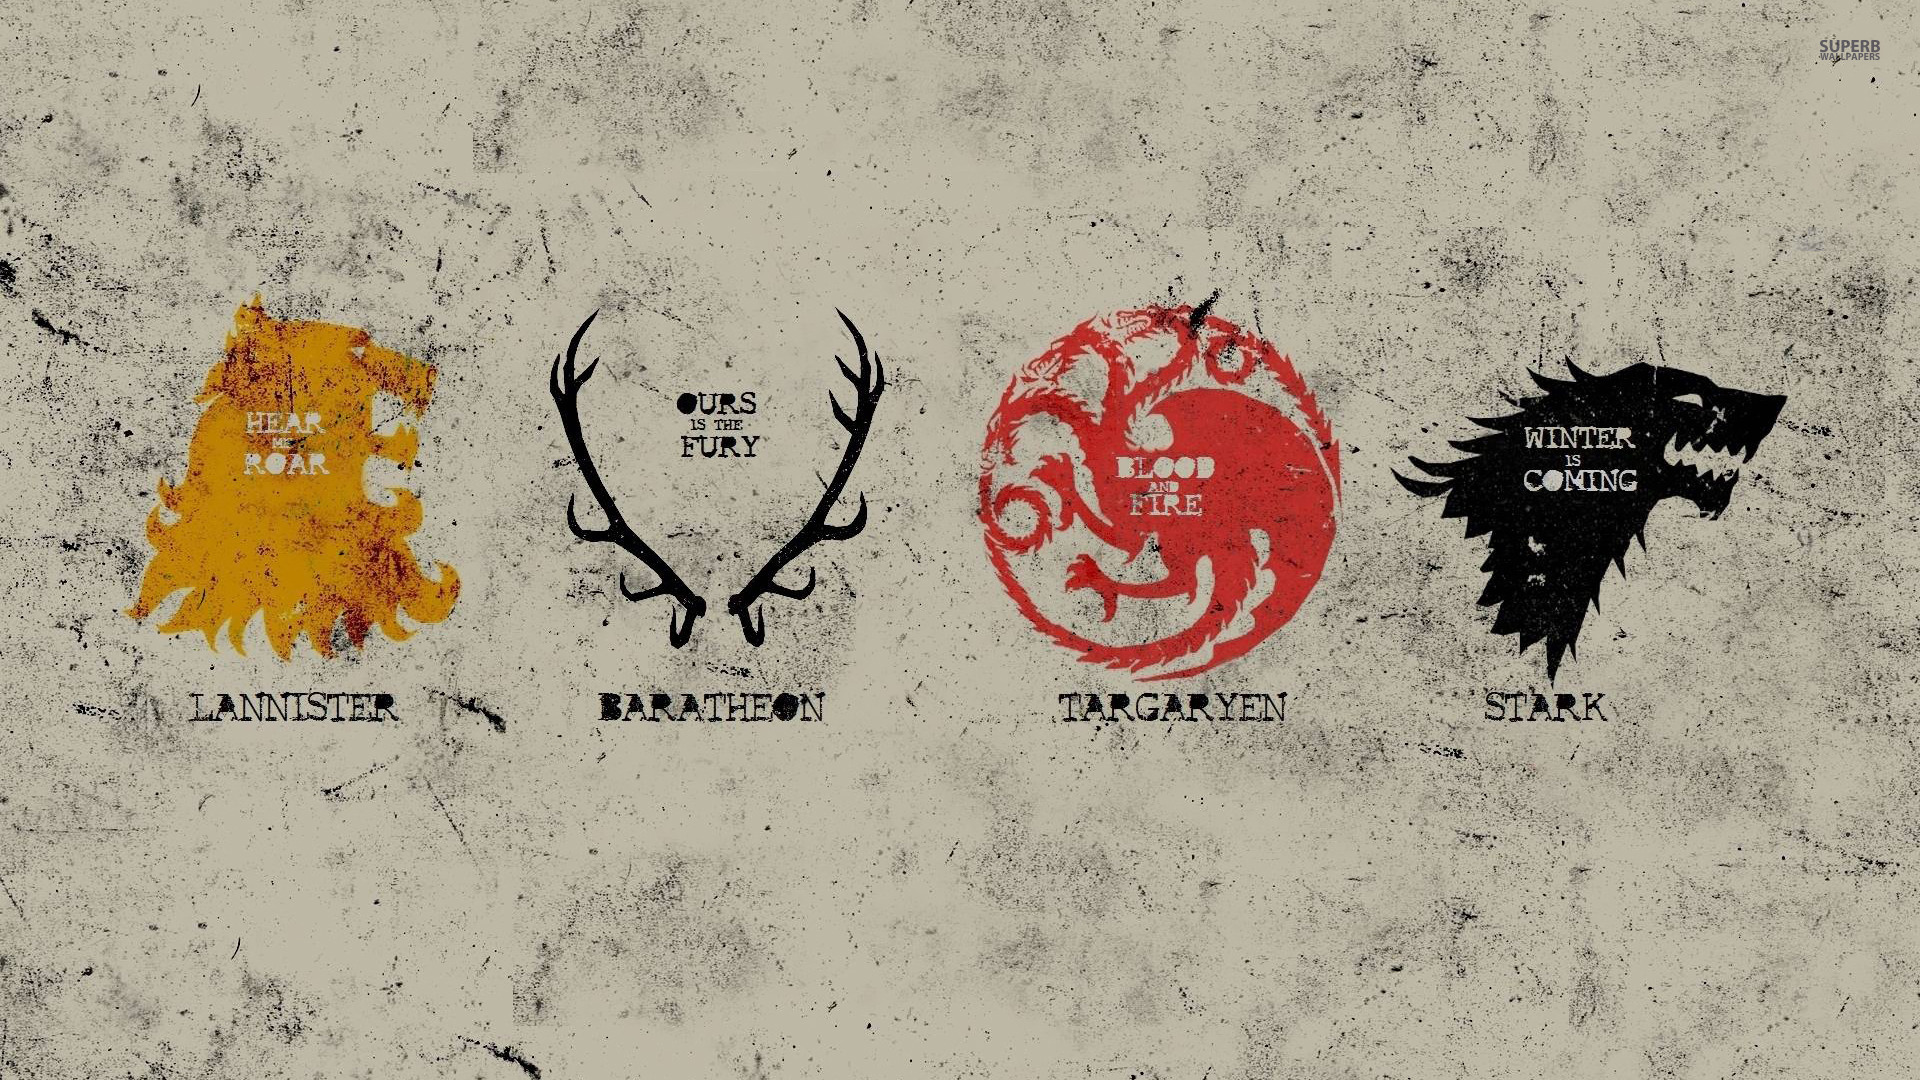 abbastanza 30 HD Game of Thrones wallpapers to support your favorite house  ER91